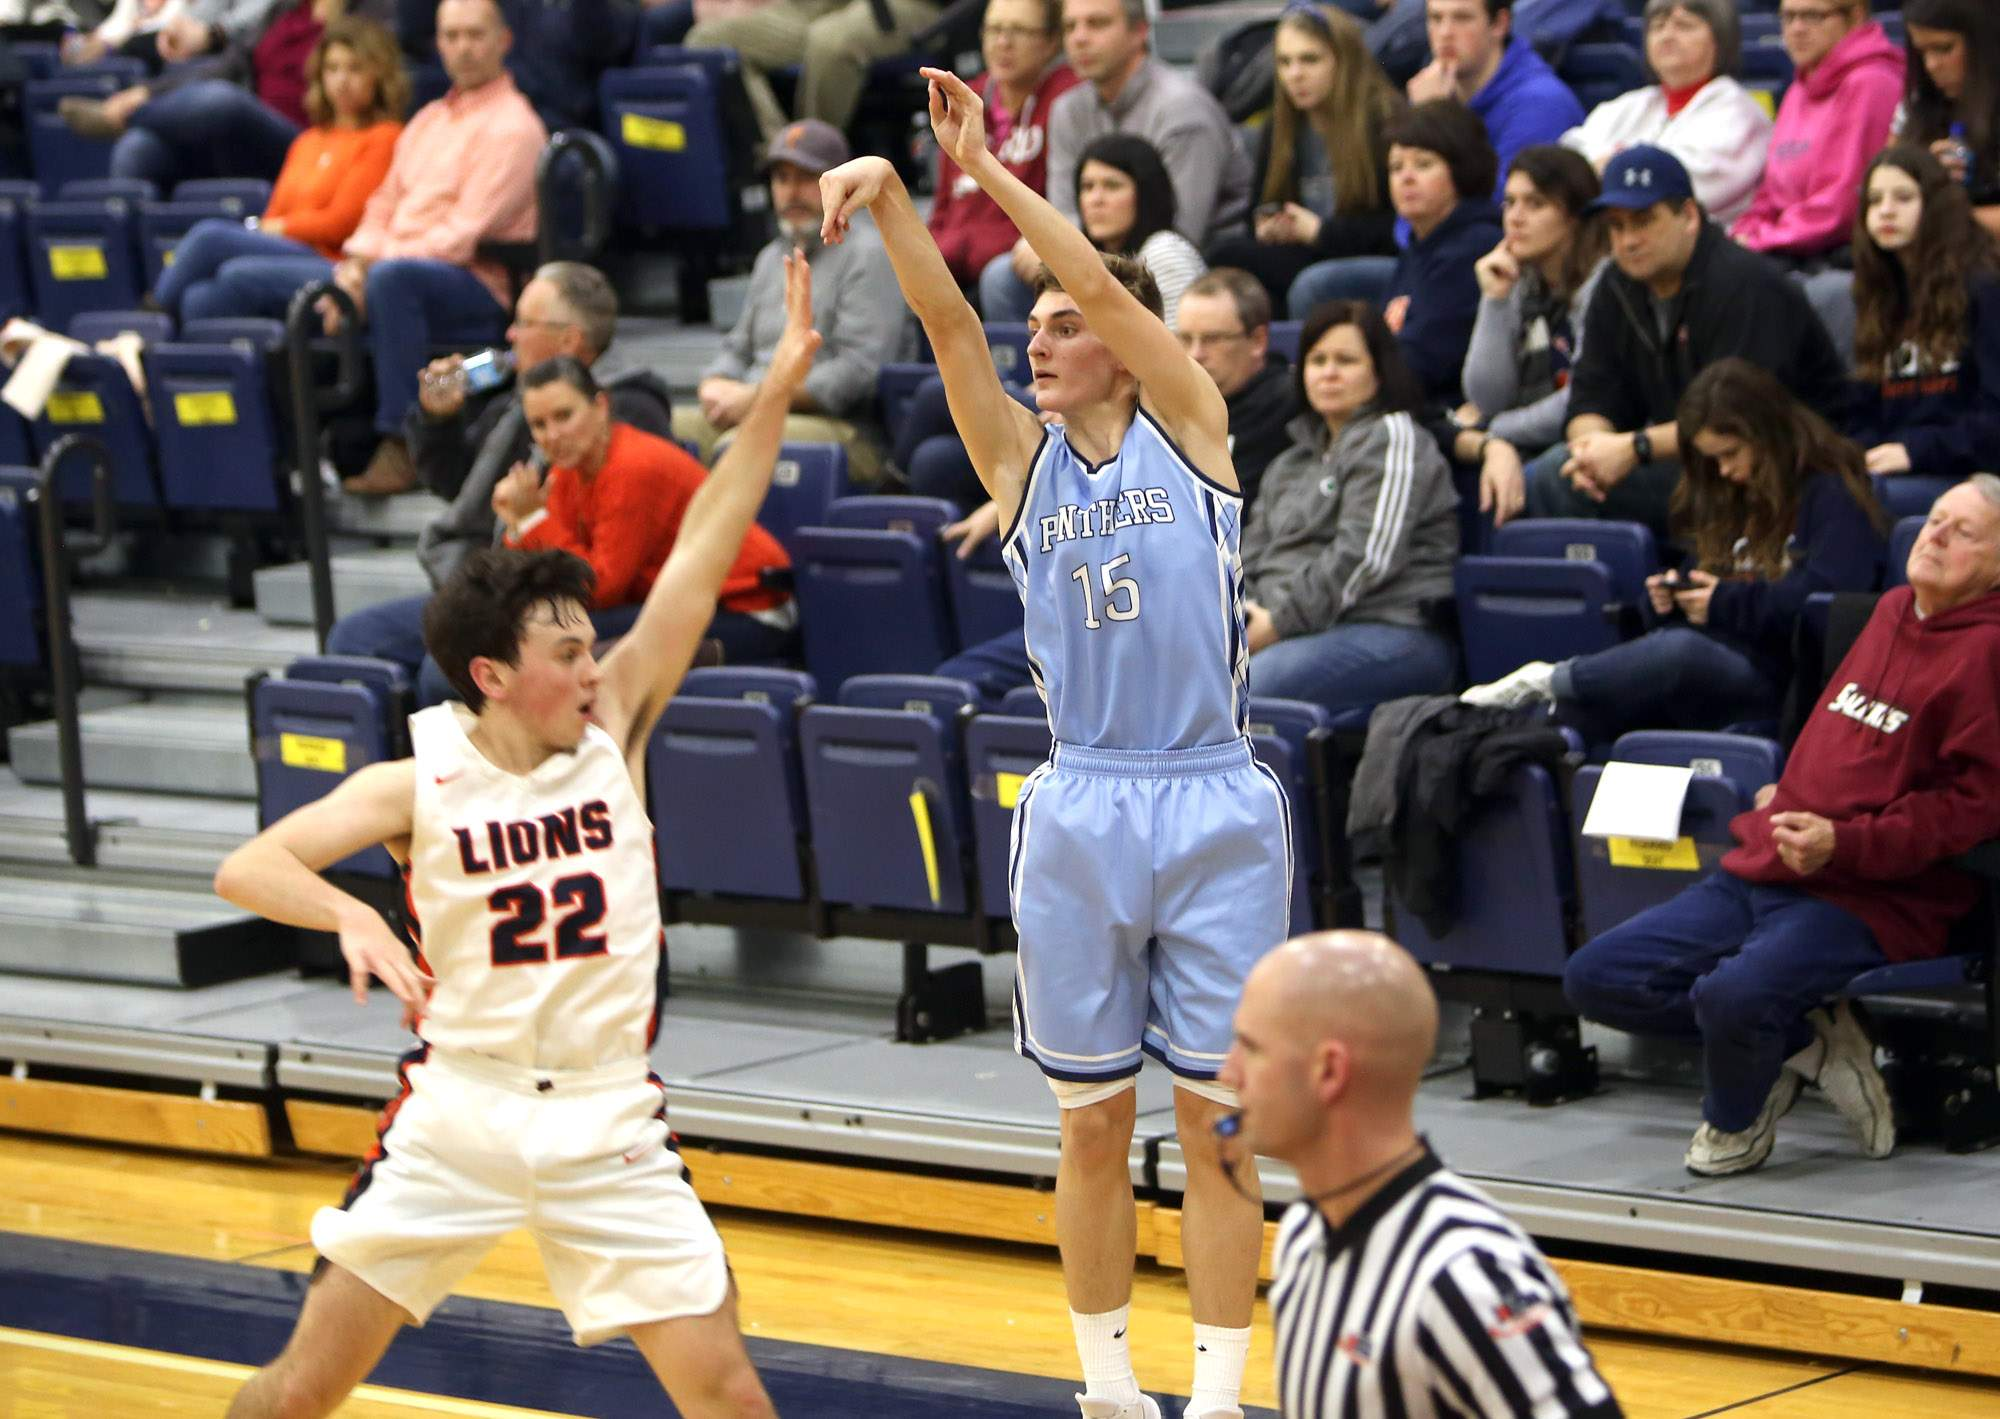 Pinckneyville senior Kelton Linze hits a 3-pointer in Friday night's win against Carterville.